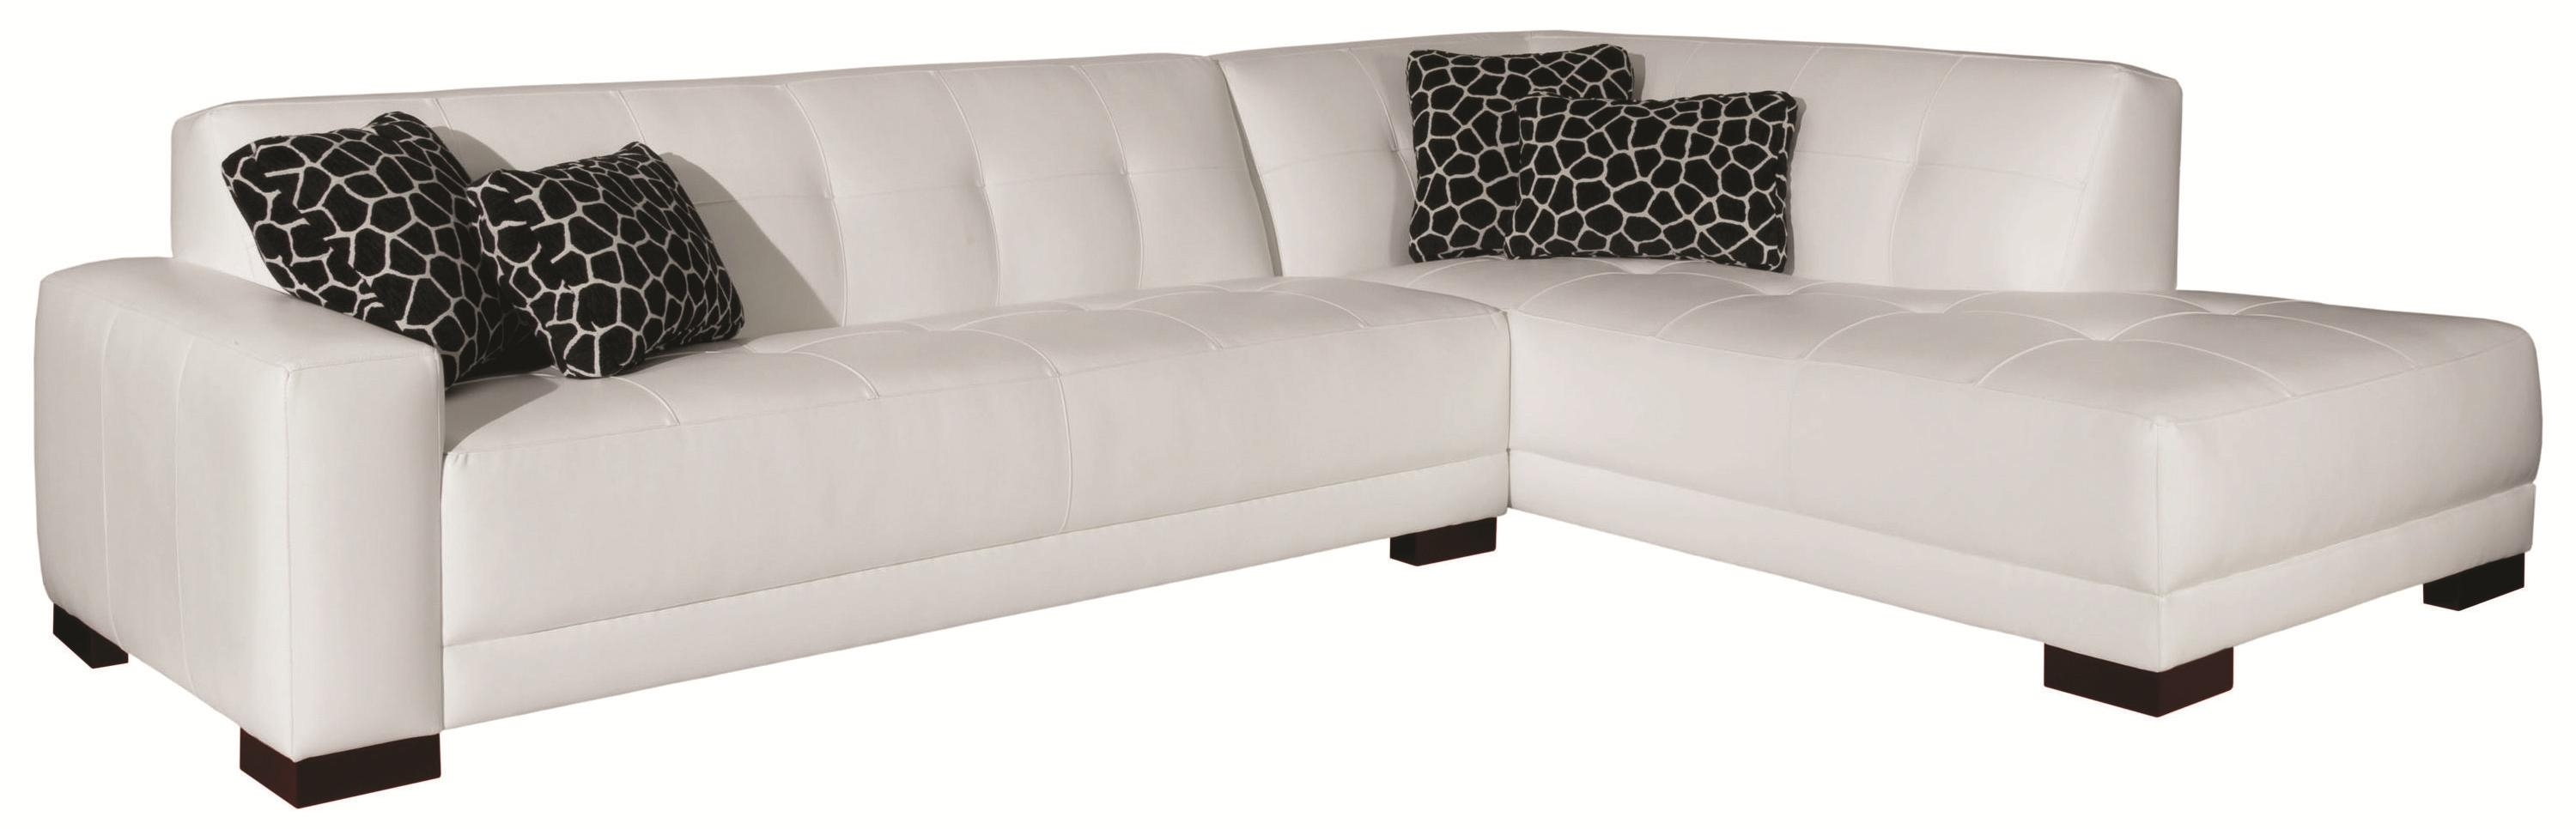 Broyhill Sectional Sofa | Aifaresidency For Sectional Sofas At Broyhill (View 7 of 15)